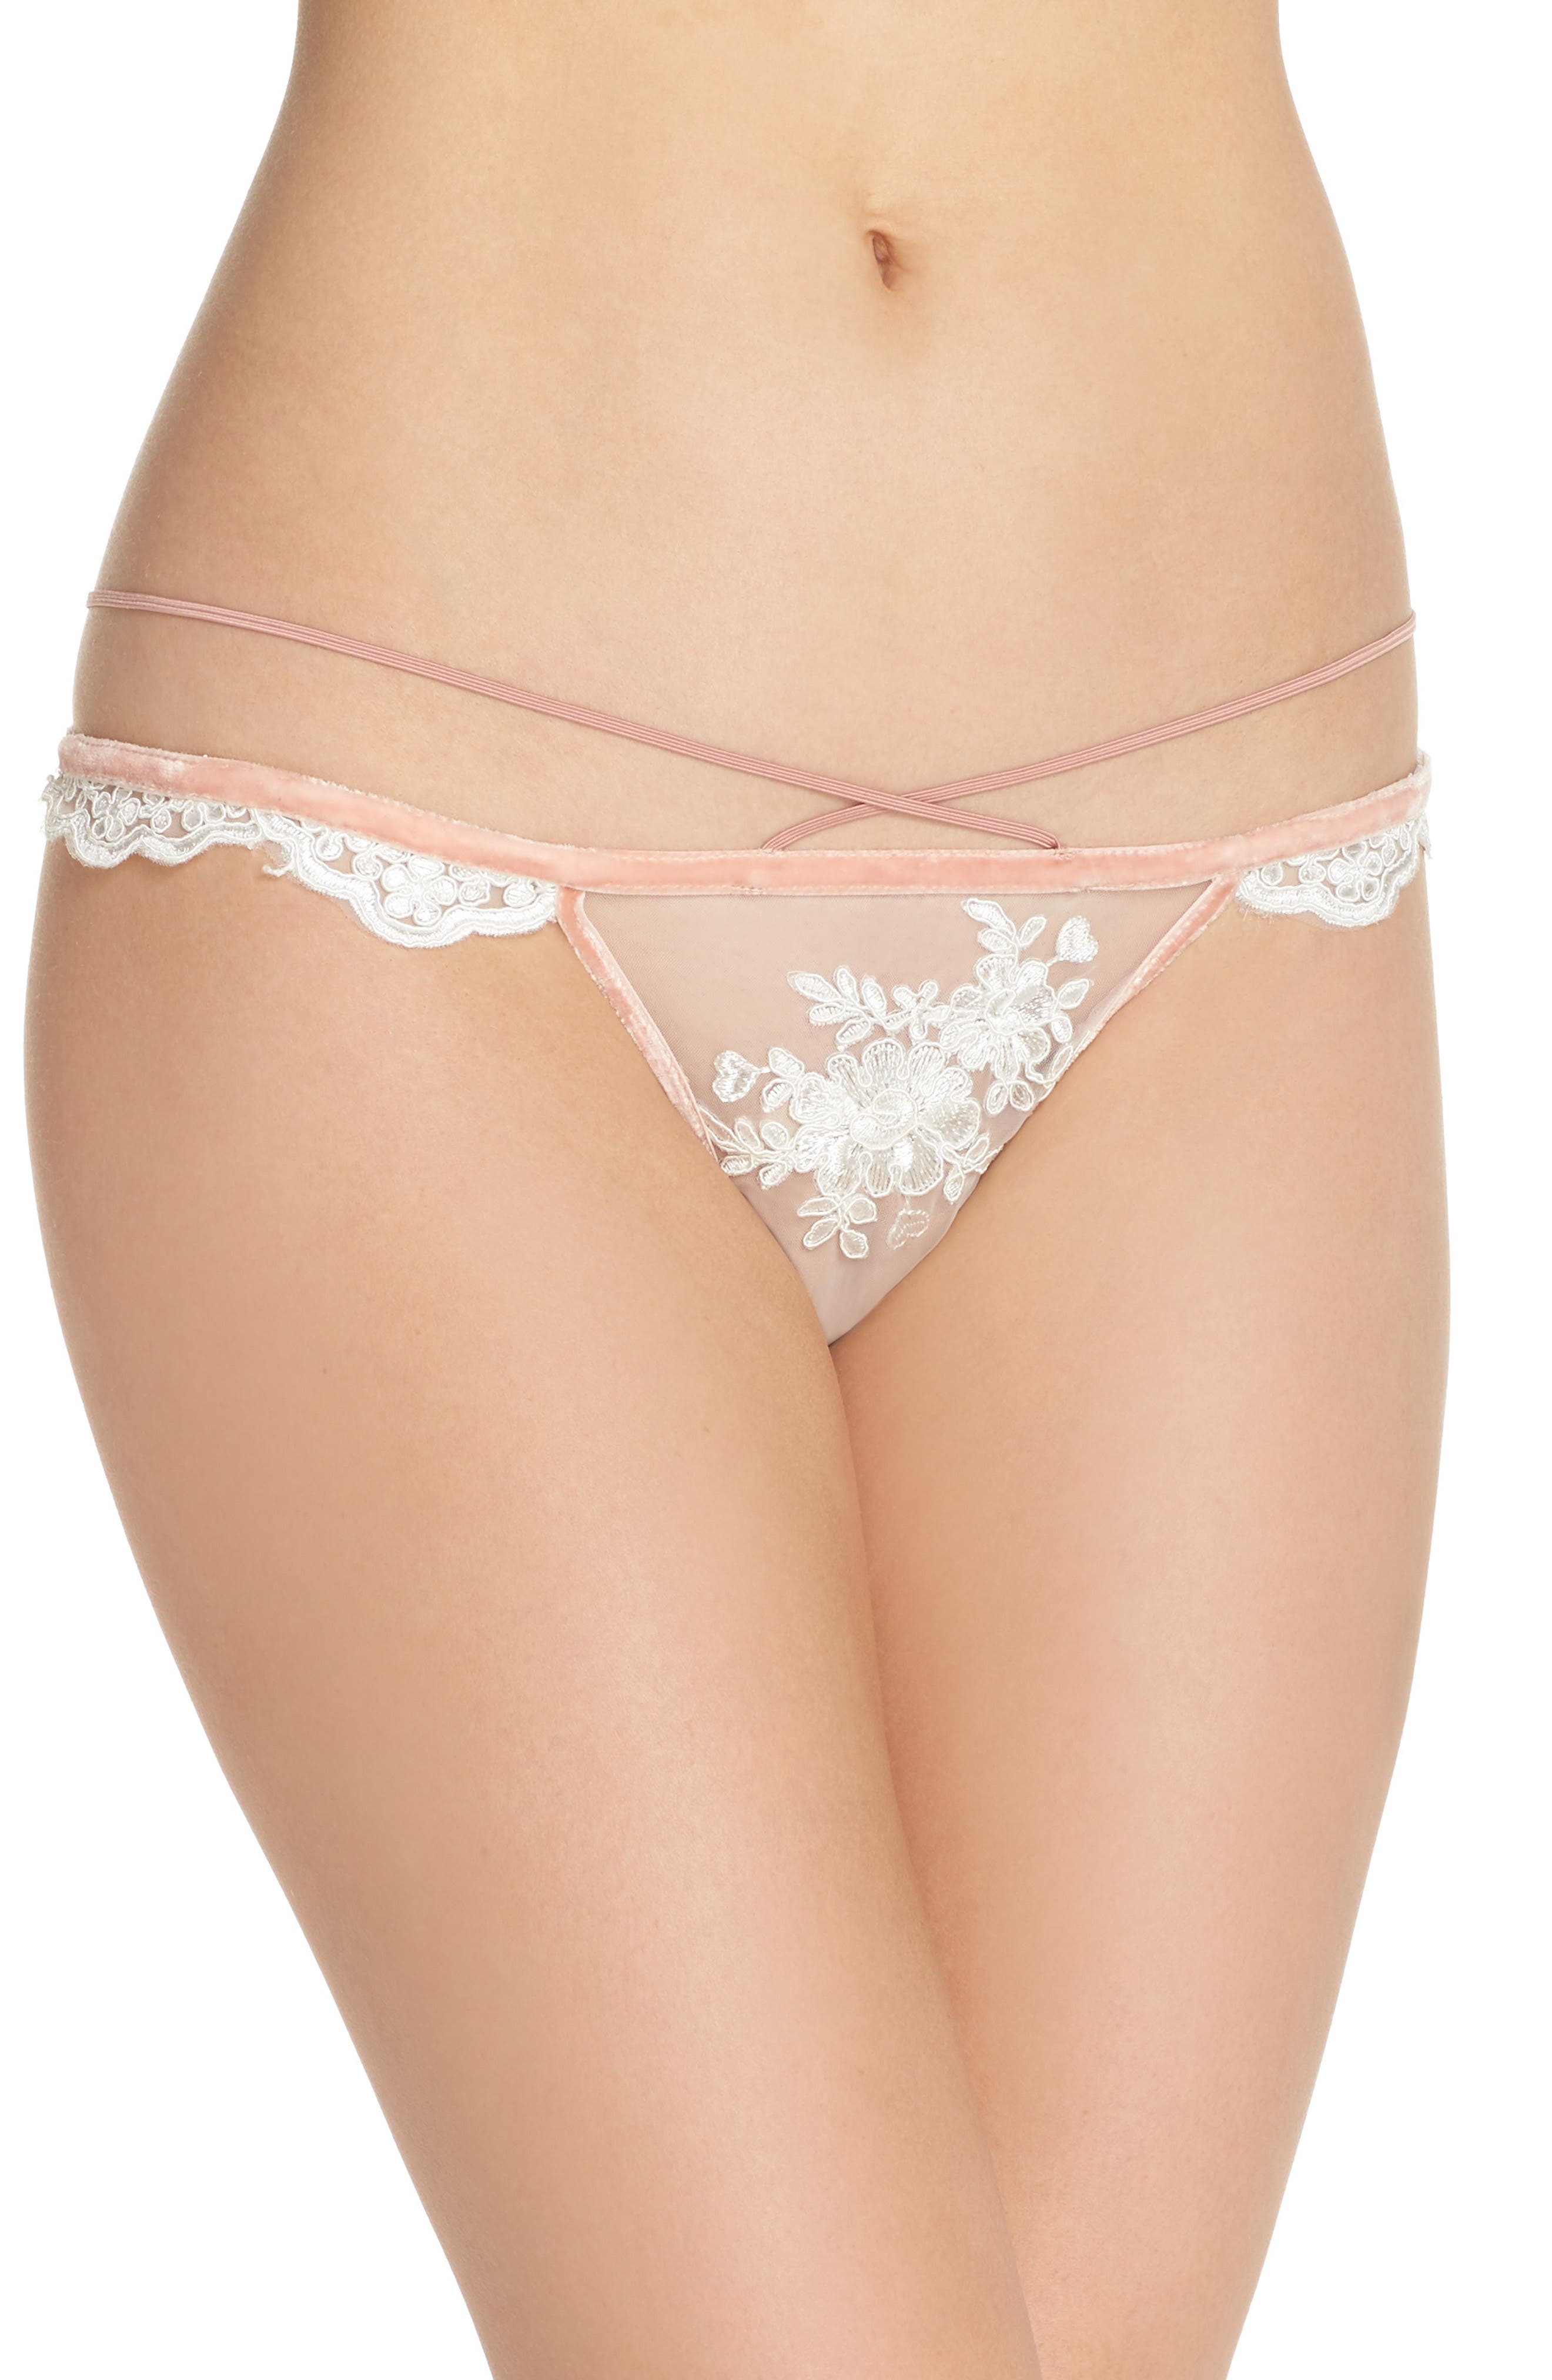 Noemi Strappy Scallop Lace Thong,                         Main,                         color, 900